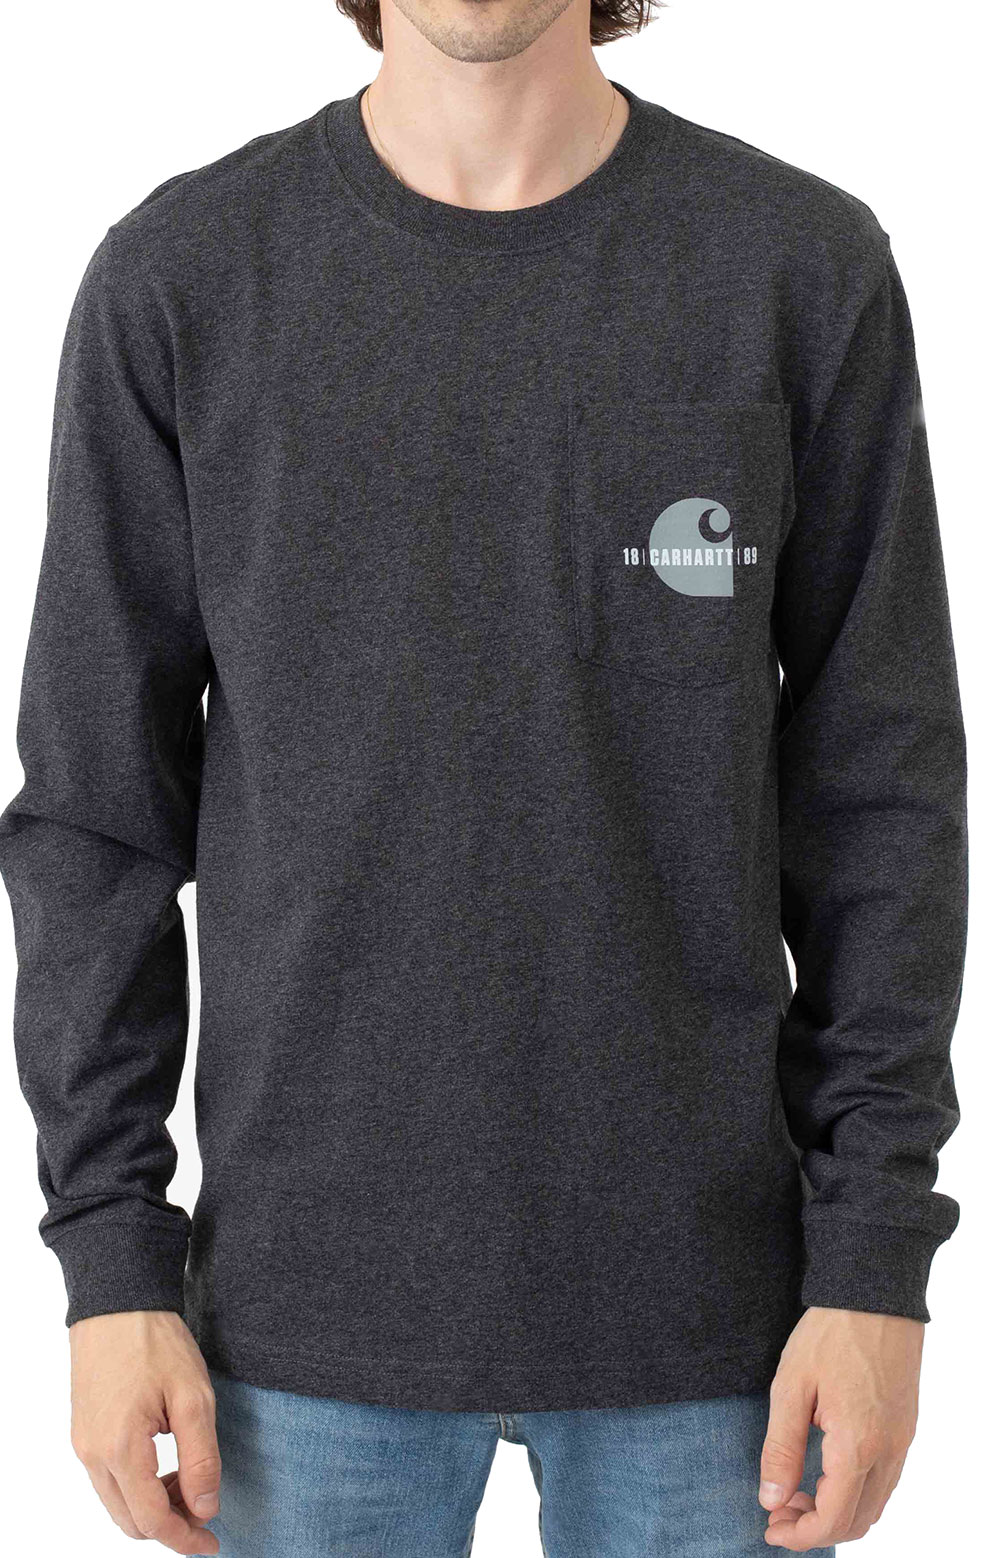 (105054) Loose Fit Heavyweight L/S Pocket Carhartt C Graphic T-Shirt - Carbon Heather